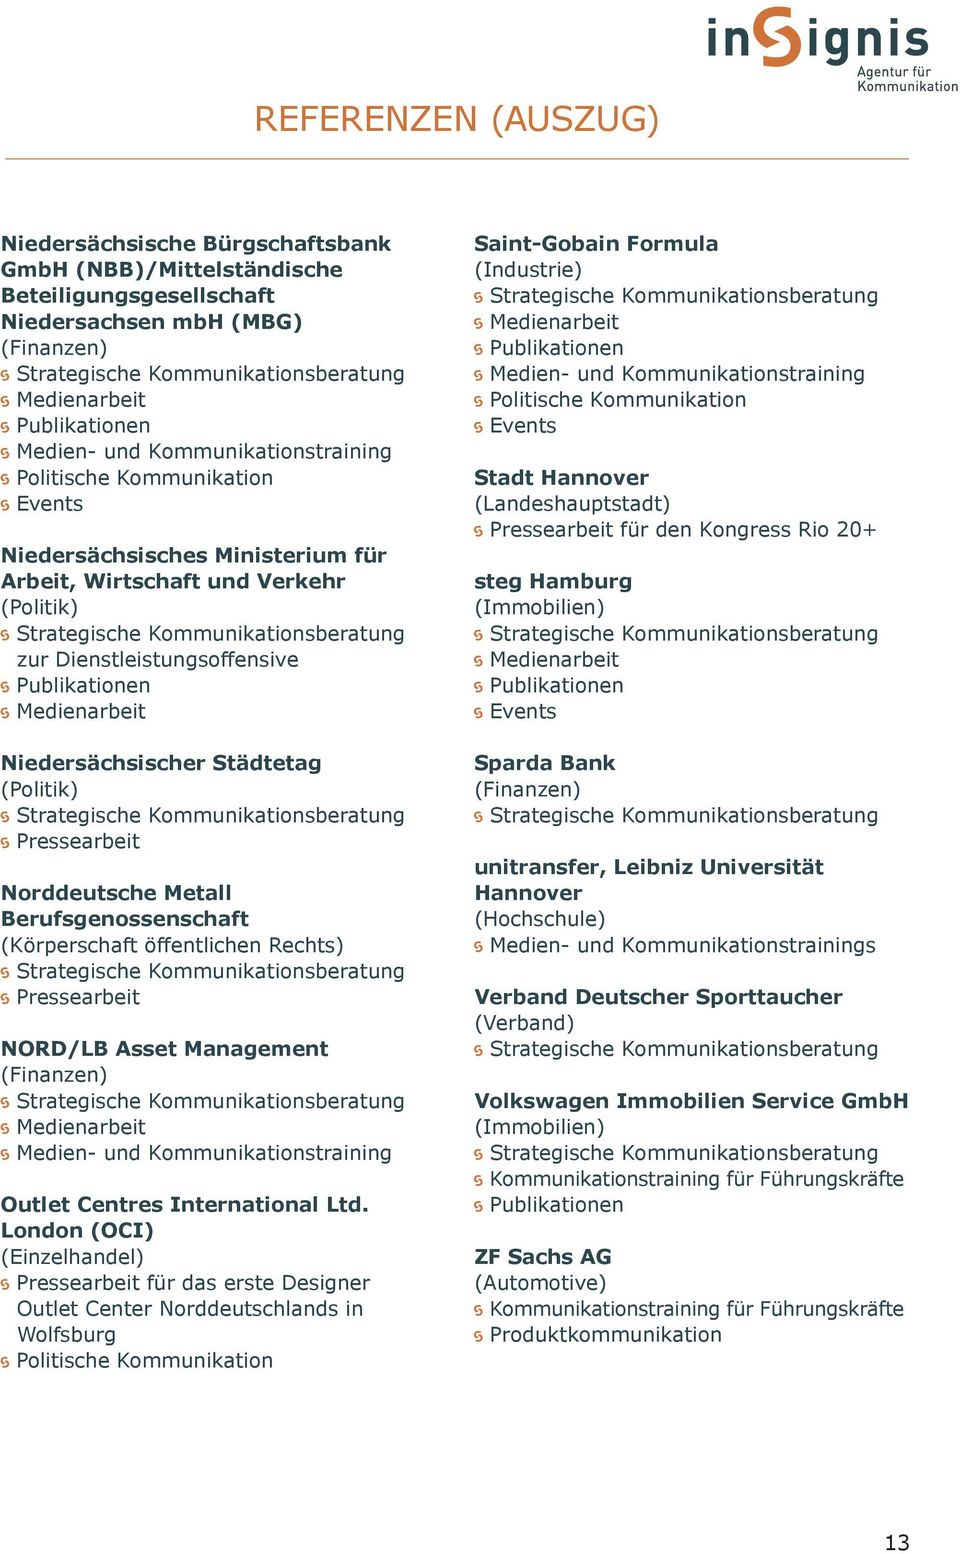 Berufsgenossenschaft (Körperschaft öffentlichen Rechts) NORD/LB Asset Management (Finanzen) Medien- und Kommunikationstraining Outlet Centres International Ltd.